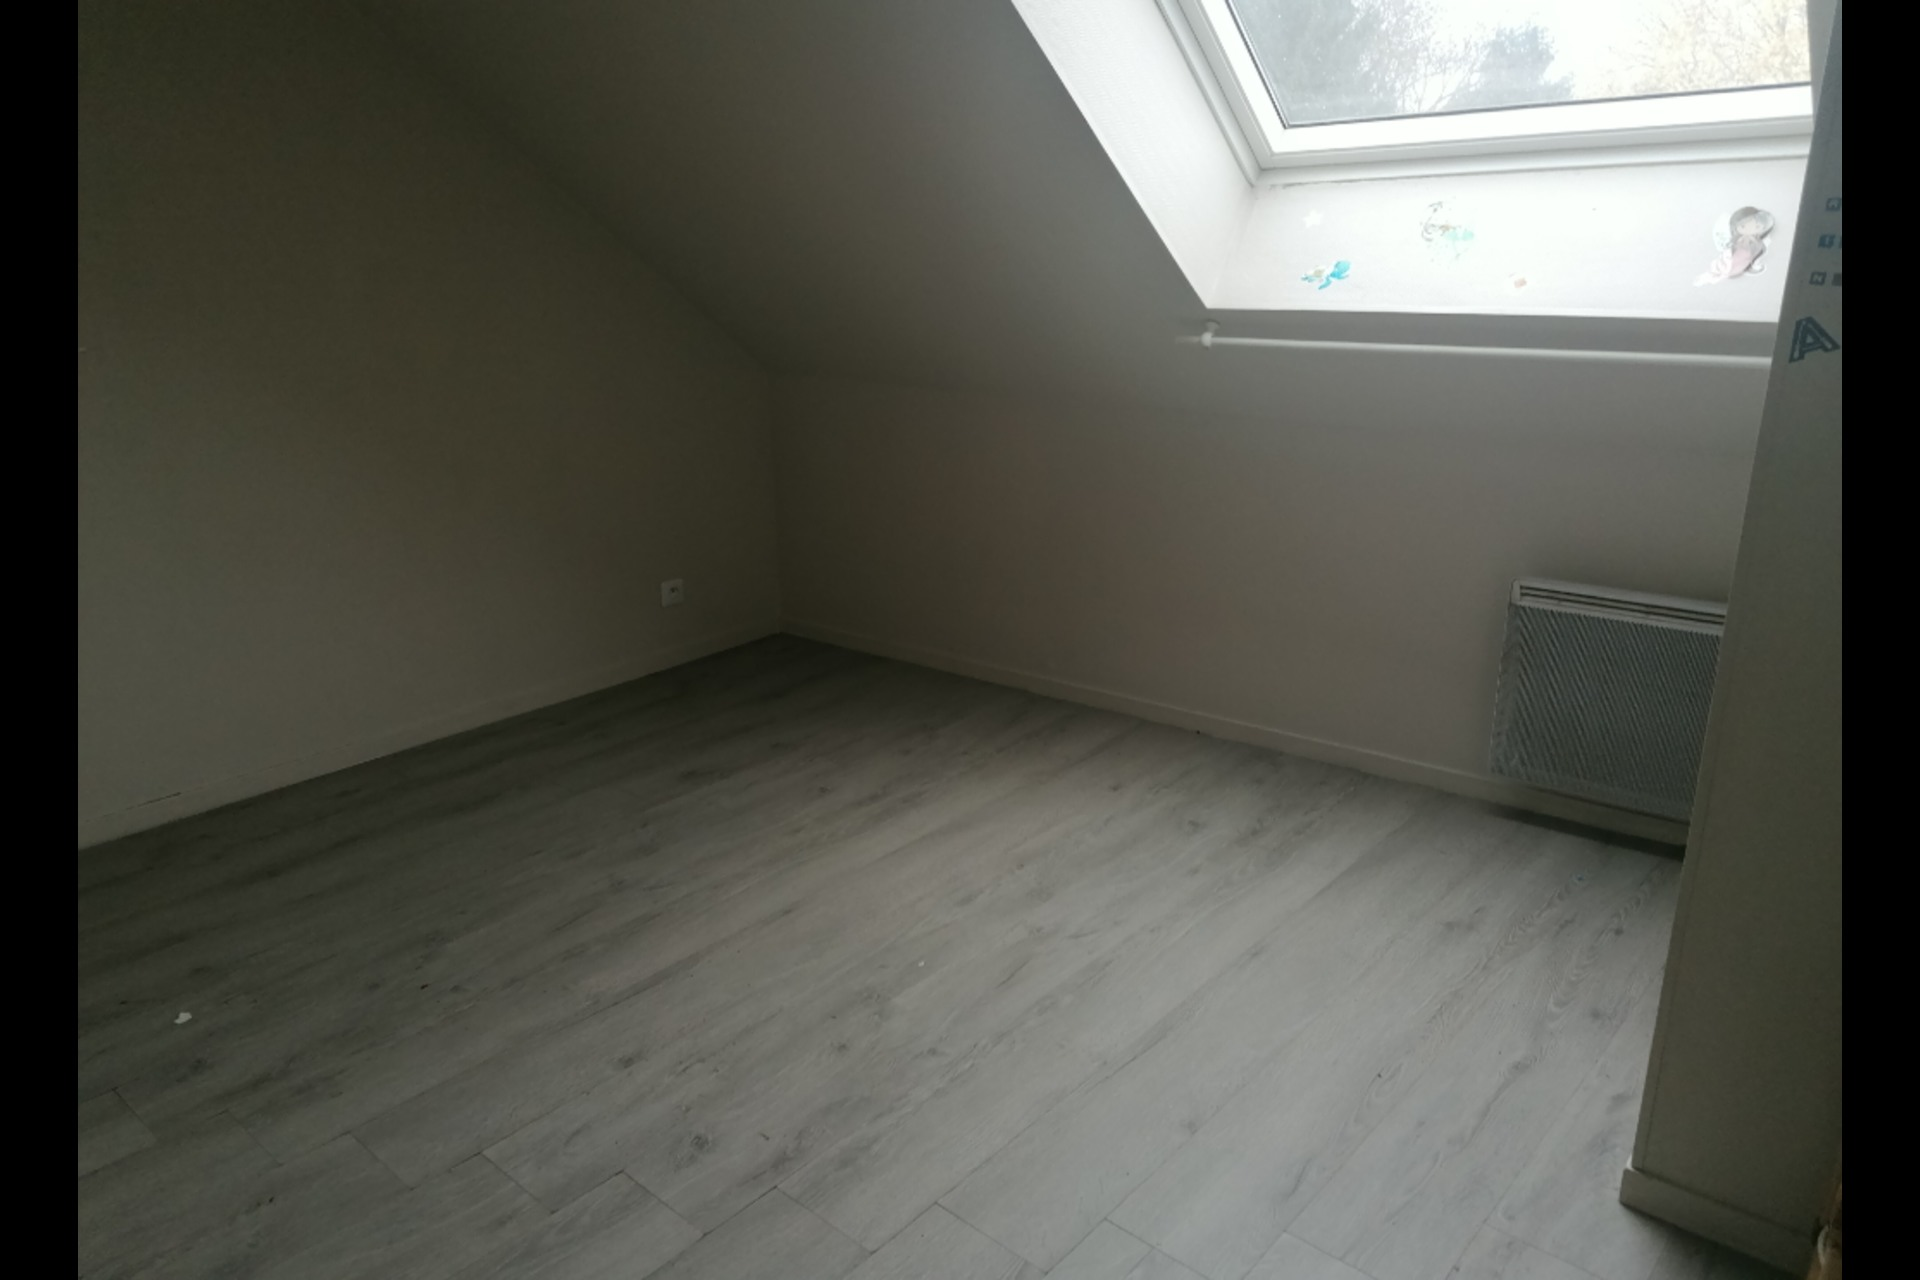 Apartment For rent milly la foret - 2 rooms